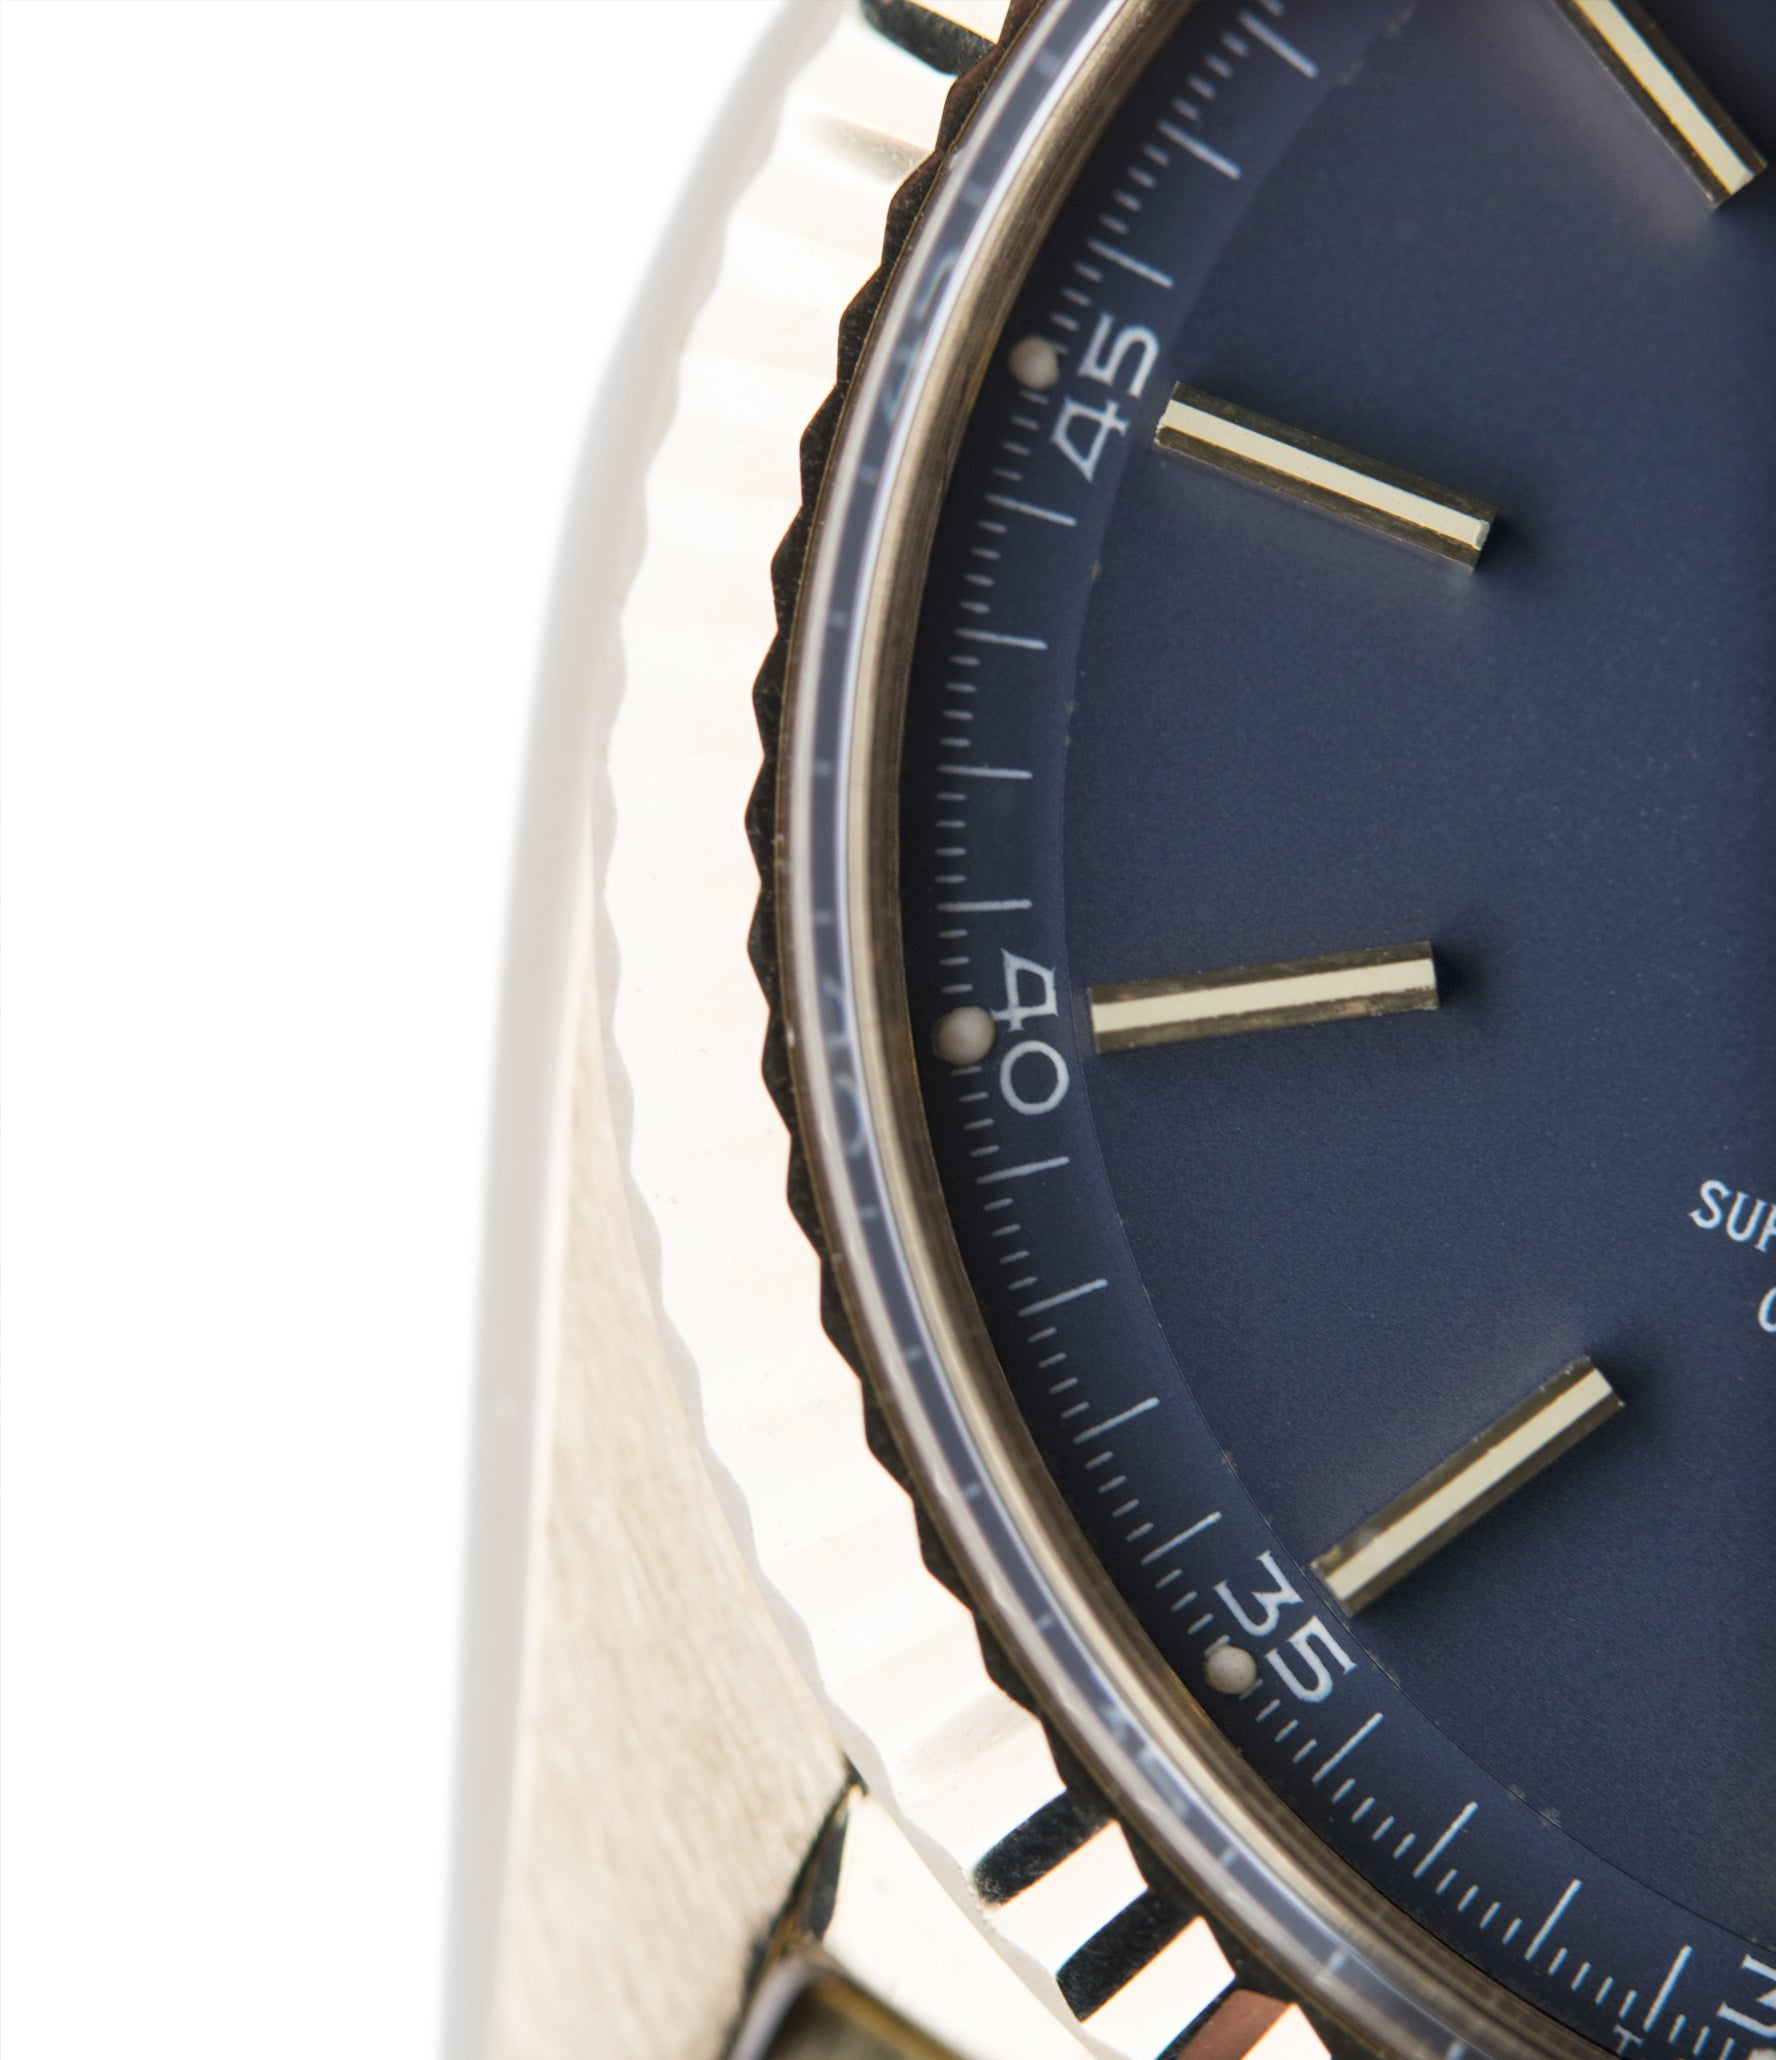 gold Rolex Day-Date 1803 Oyster Perpetual Cal. 1556 blue dial watch for sale online at A Collected Man London UK specialist of rare watches